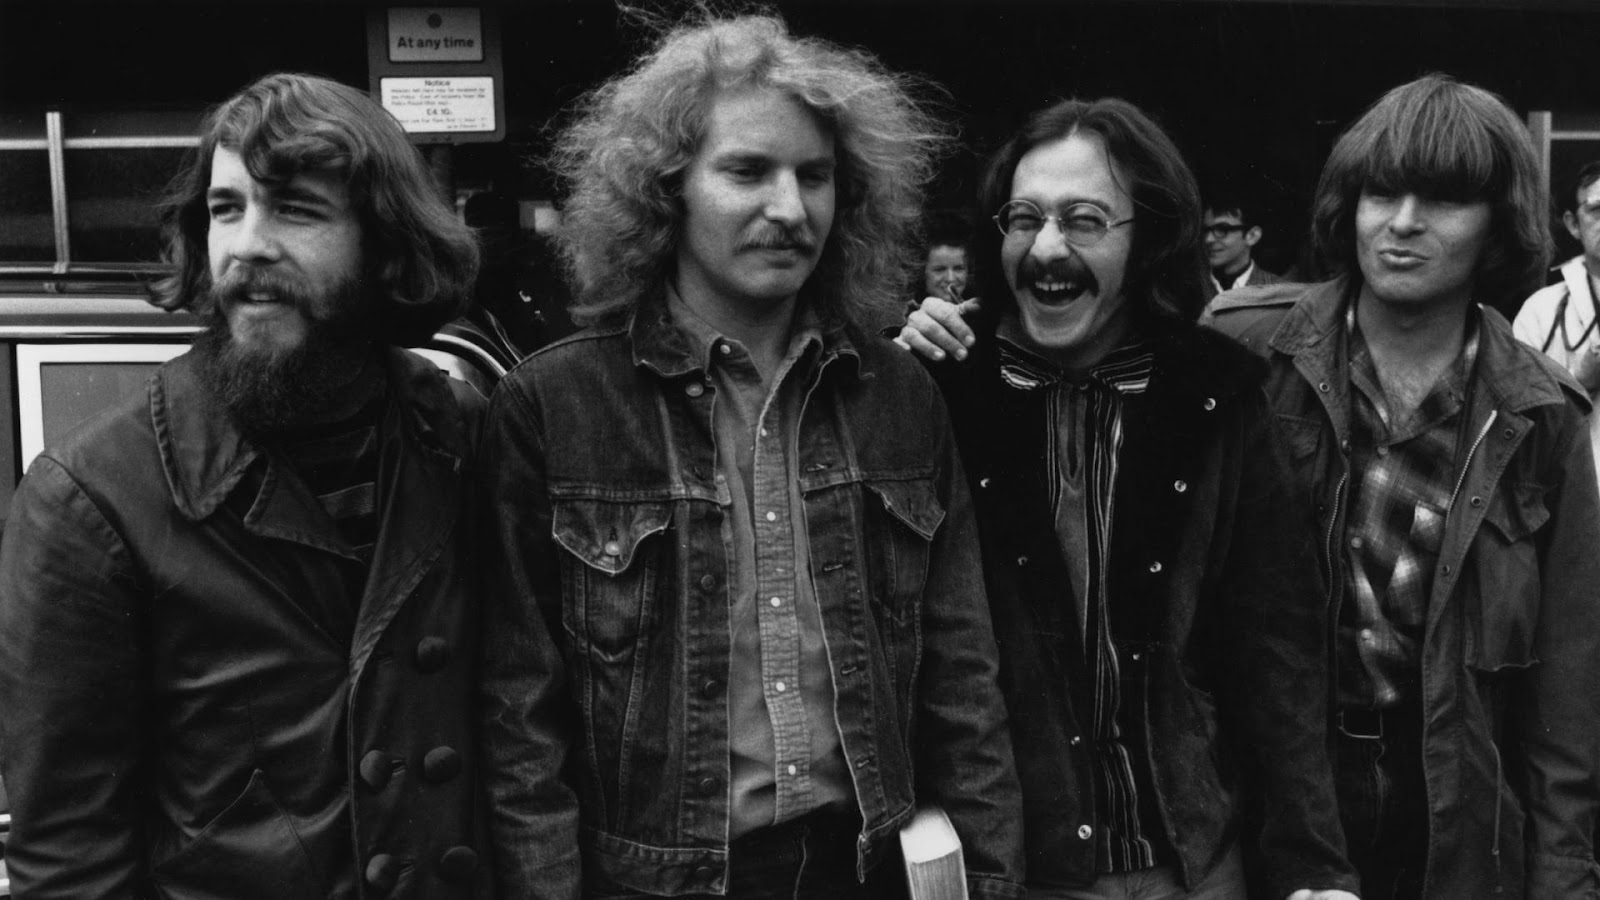 Bleach Wallpaper Hd Iphone 6 Wallpapers Hd Creedence Clearwater Revival Wallpapers